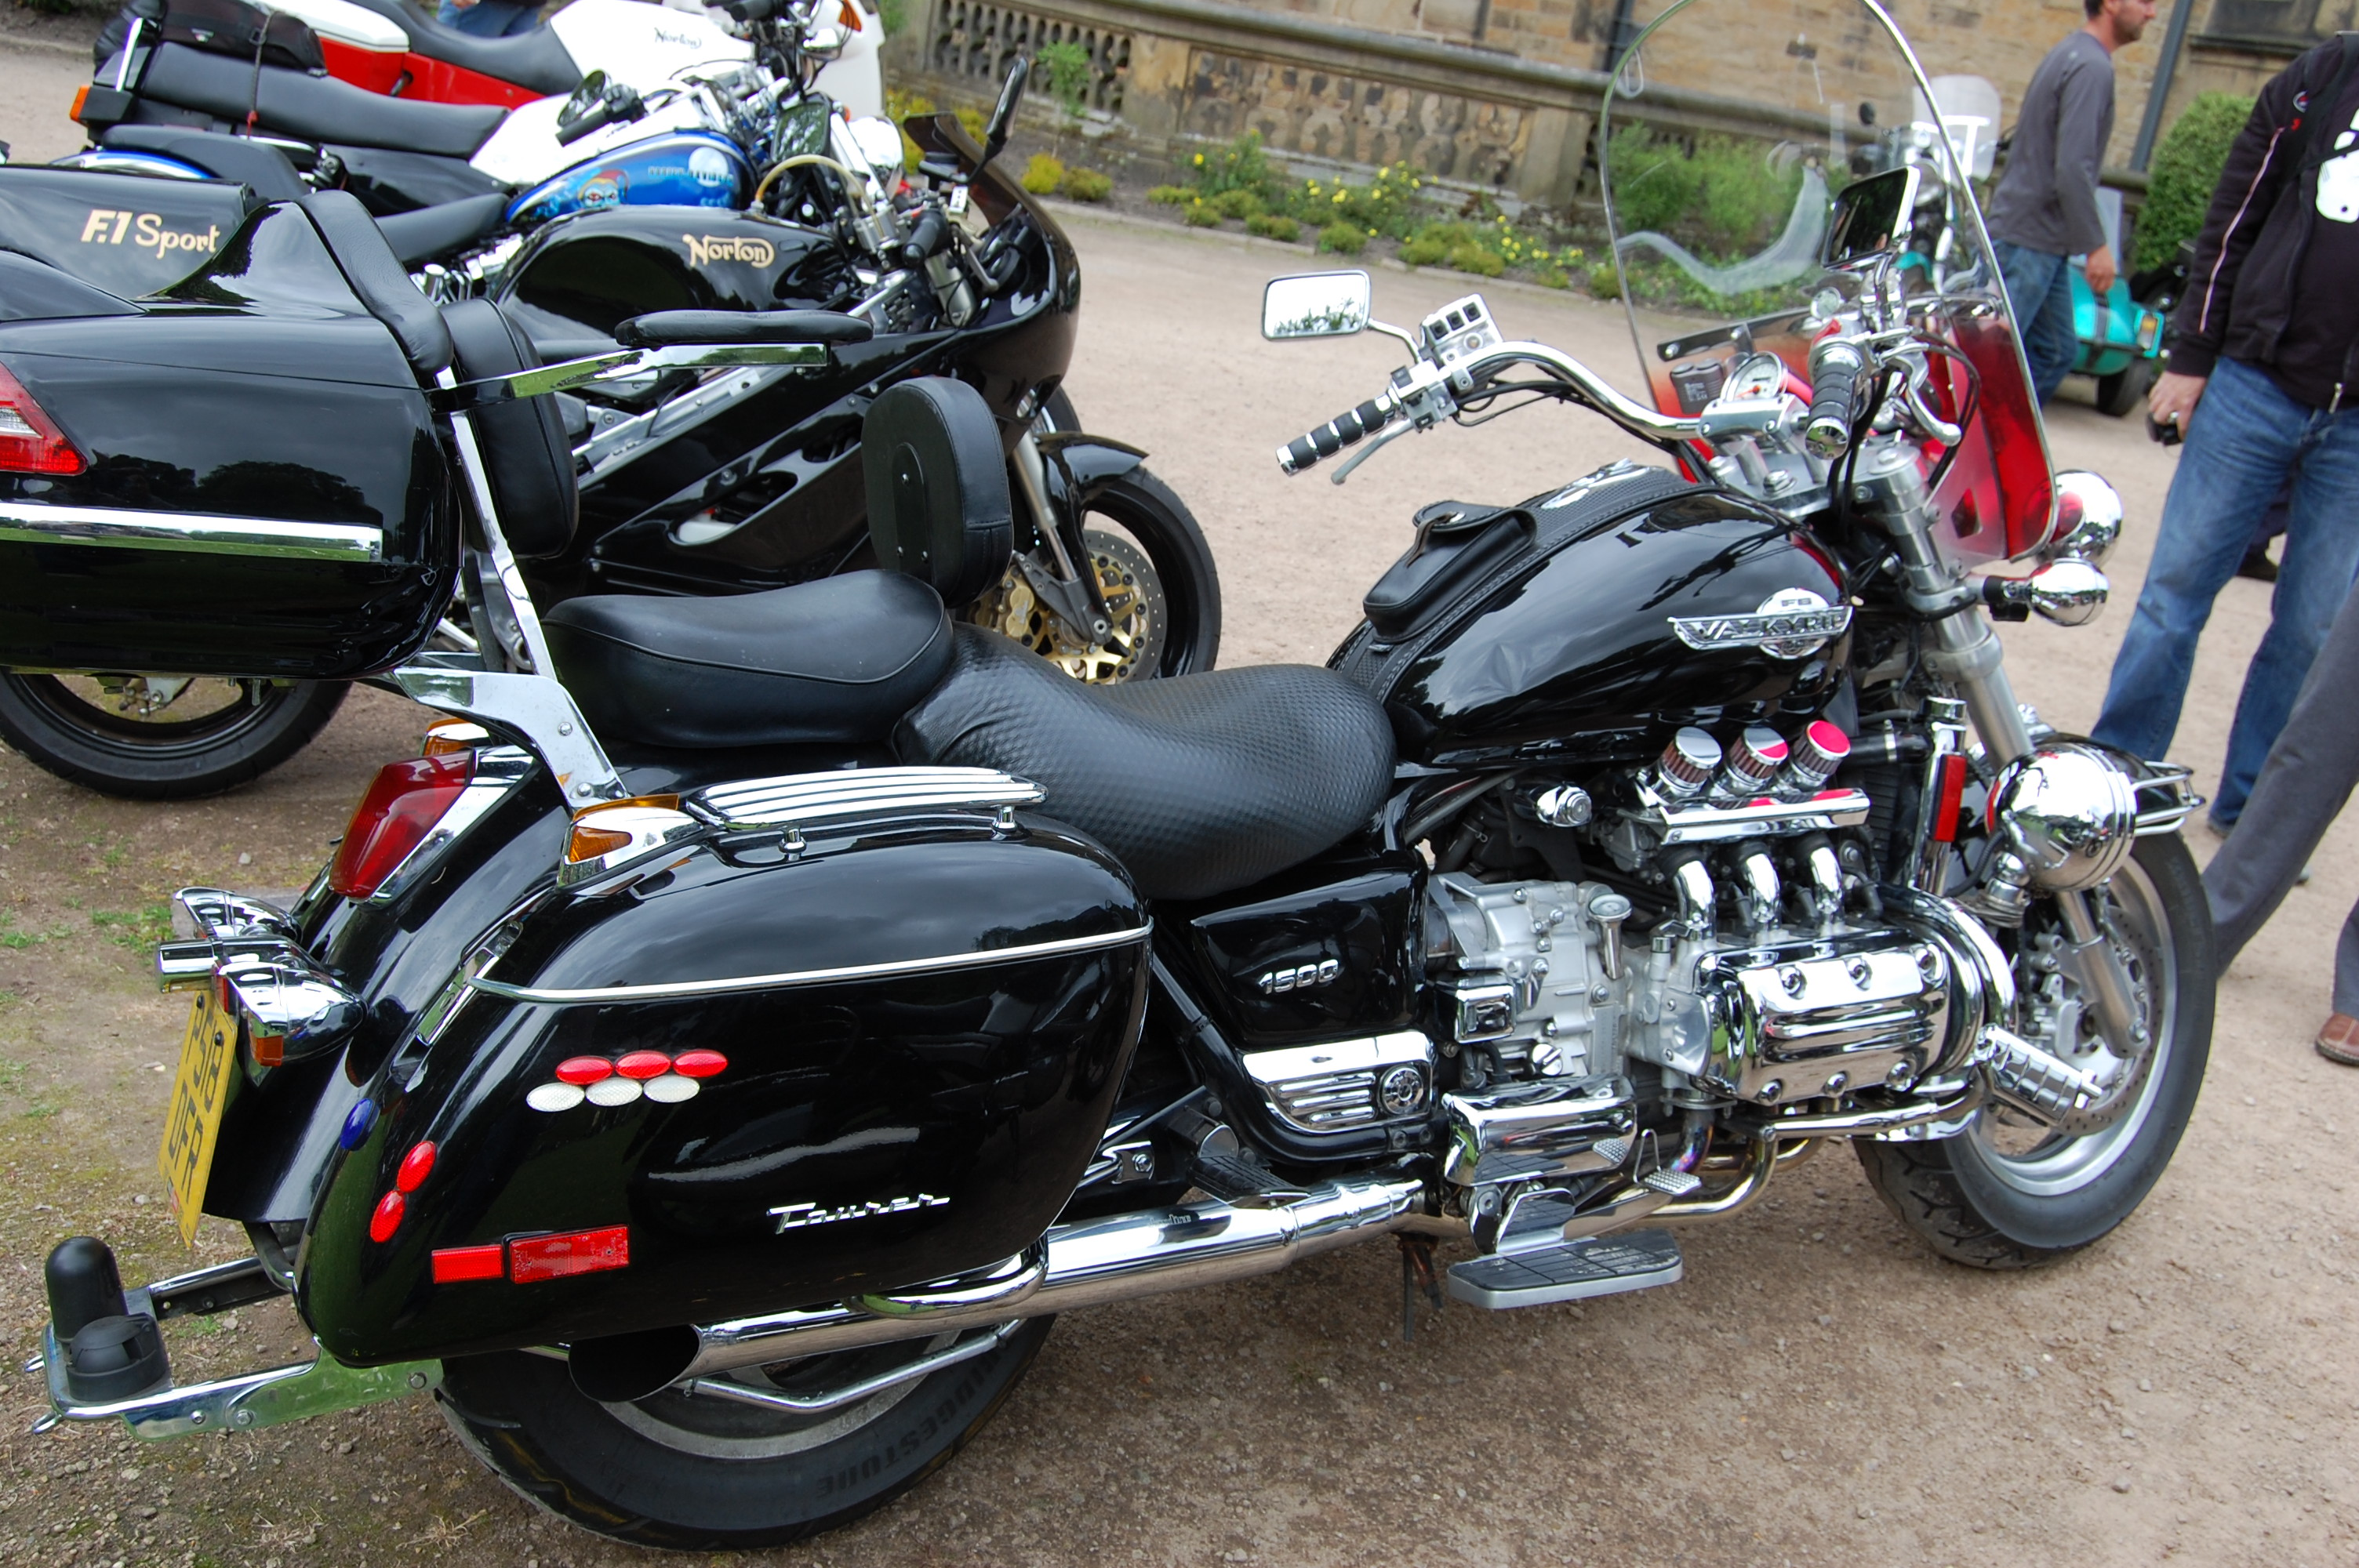 Bikes Honda Speed 1500 Cc CC SIX CYLINDER ENGINE